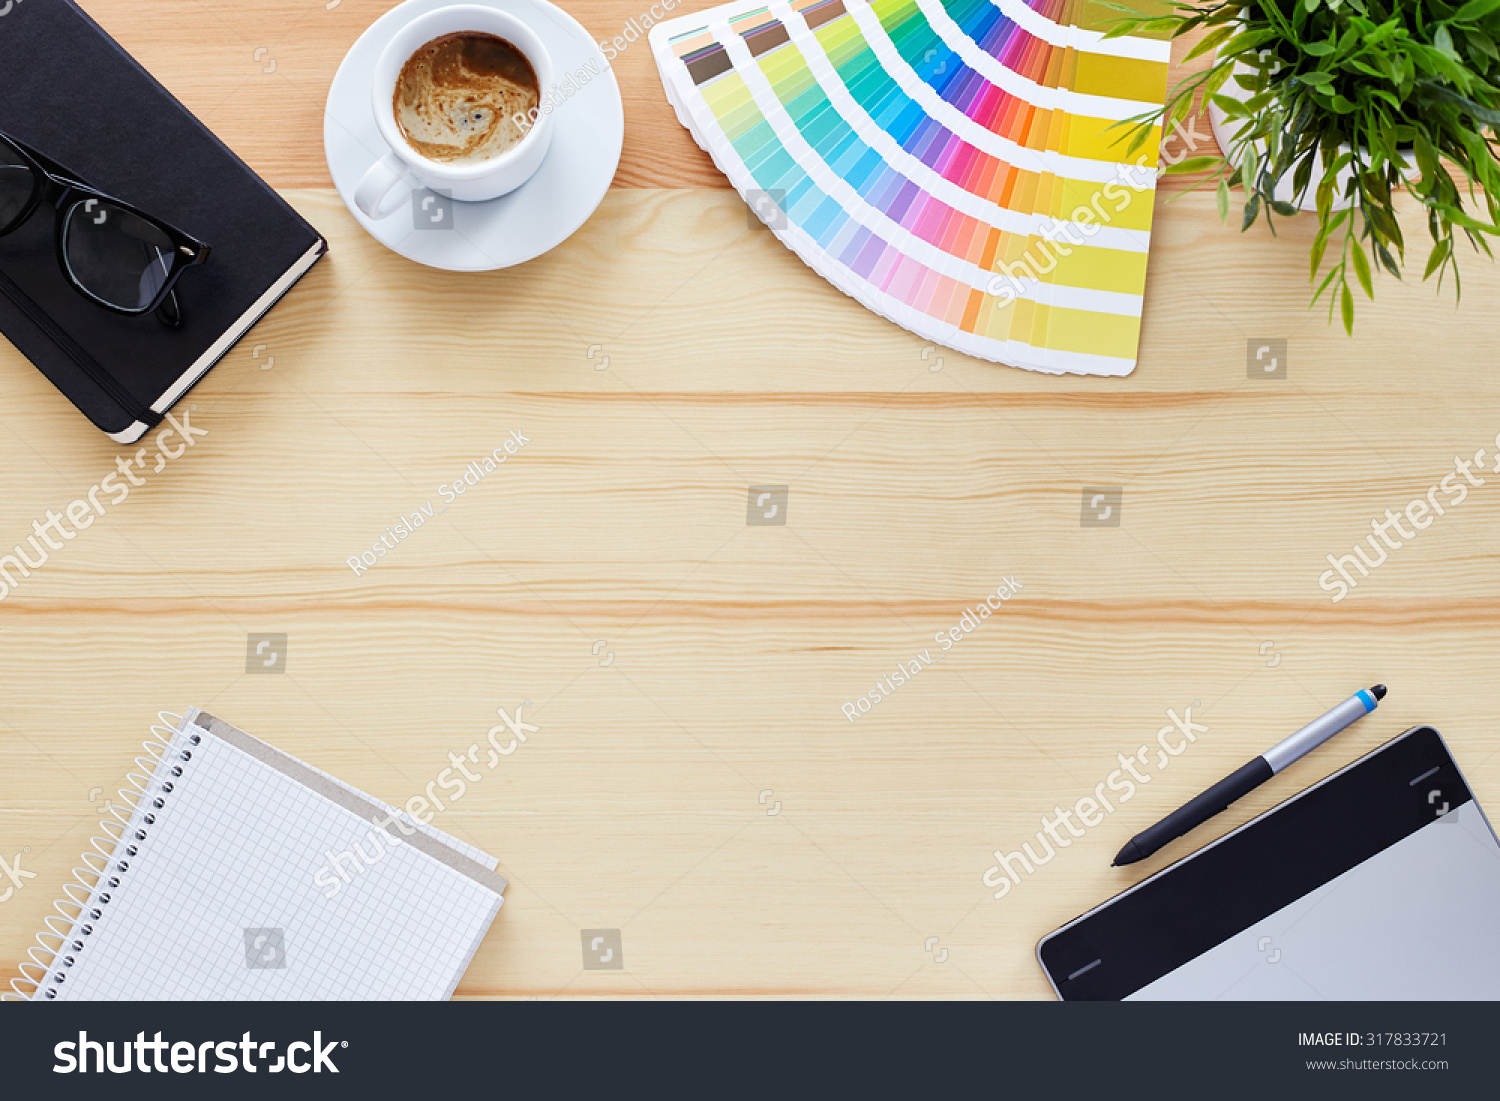 Top view of the table graphic designer stock photo for Table graphic design